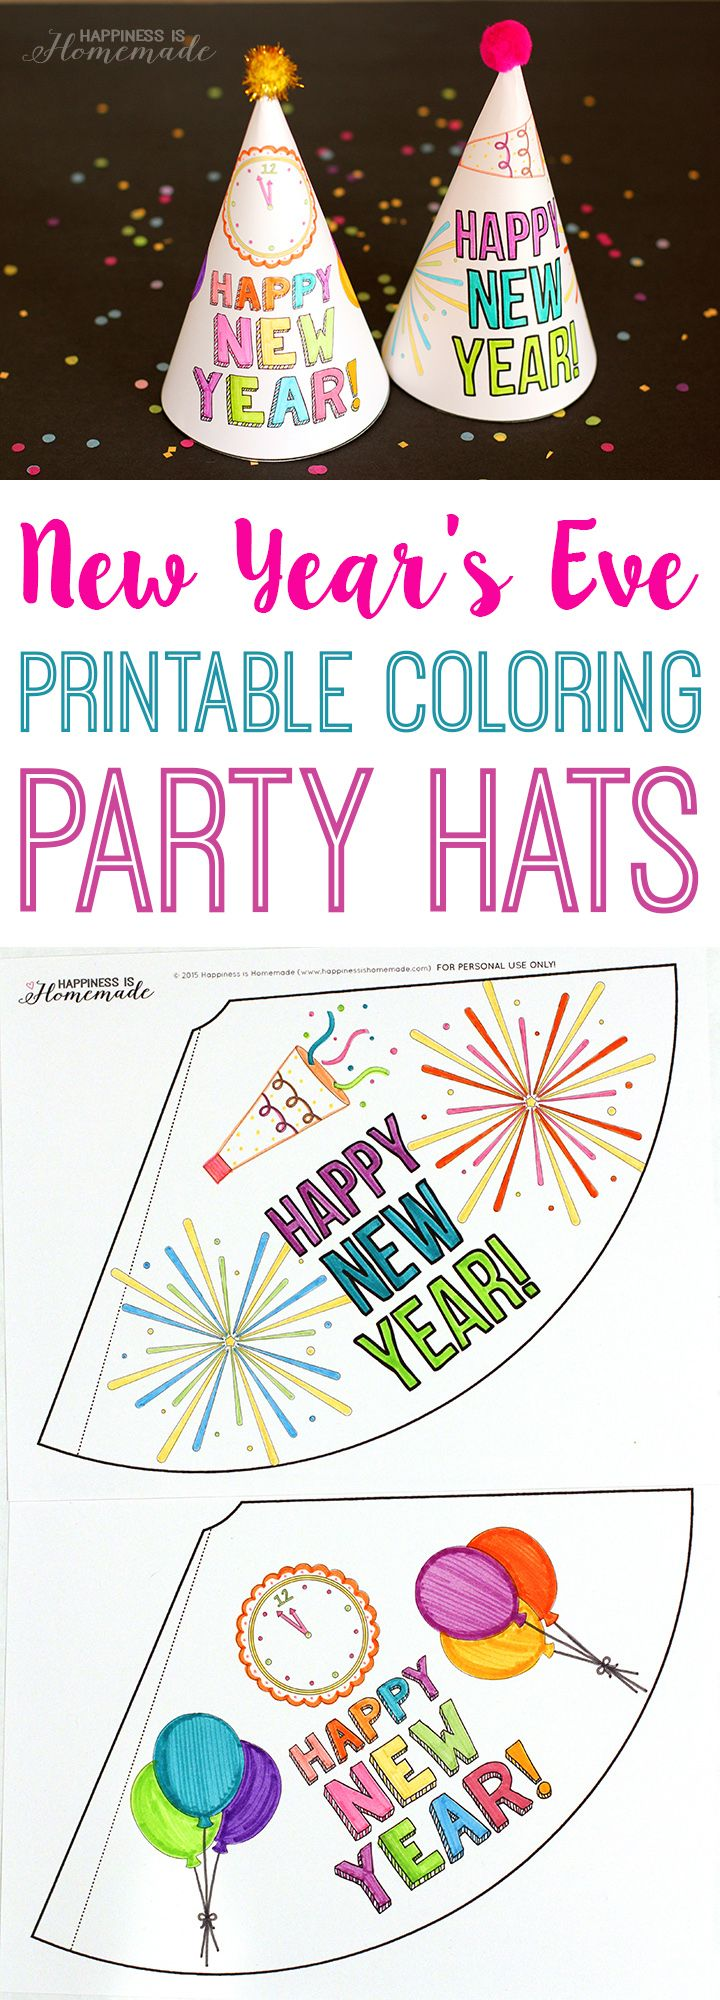 Printable Coloring Party Hats + 10 New Year's Eve Activities for Kids - ad Happiness is Homemade #HorizonHolidays